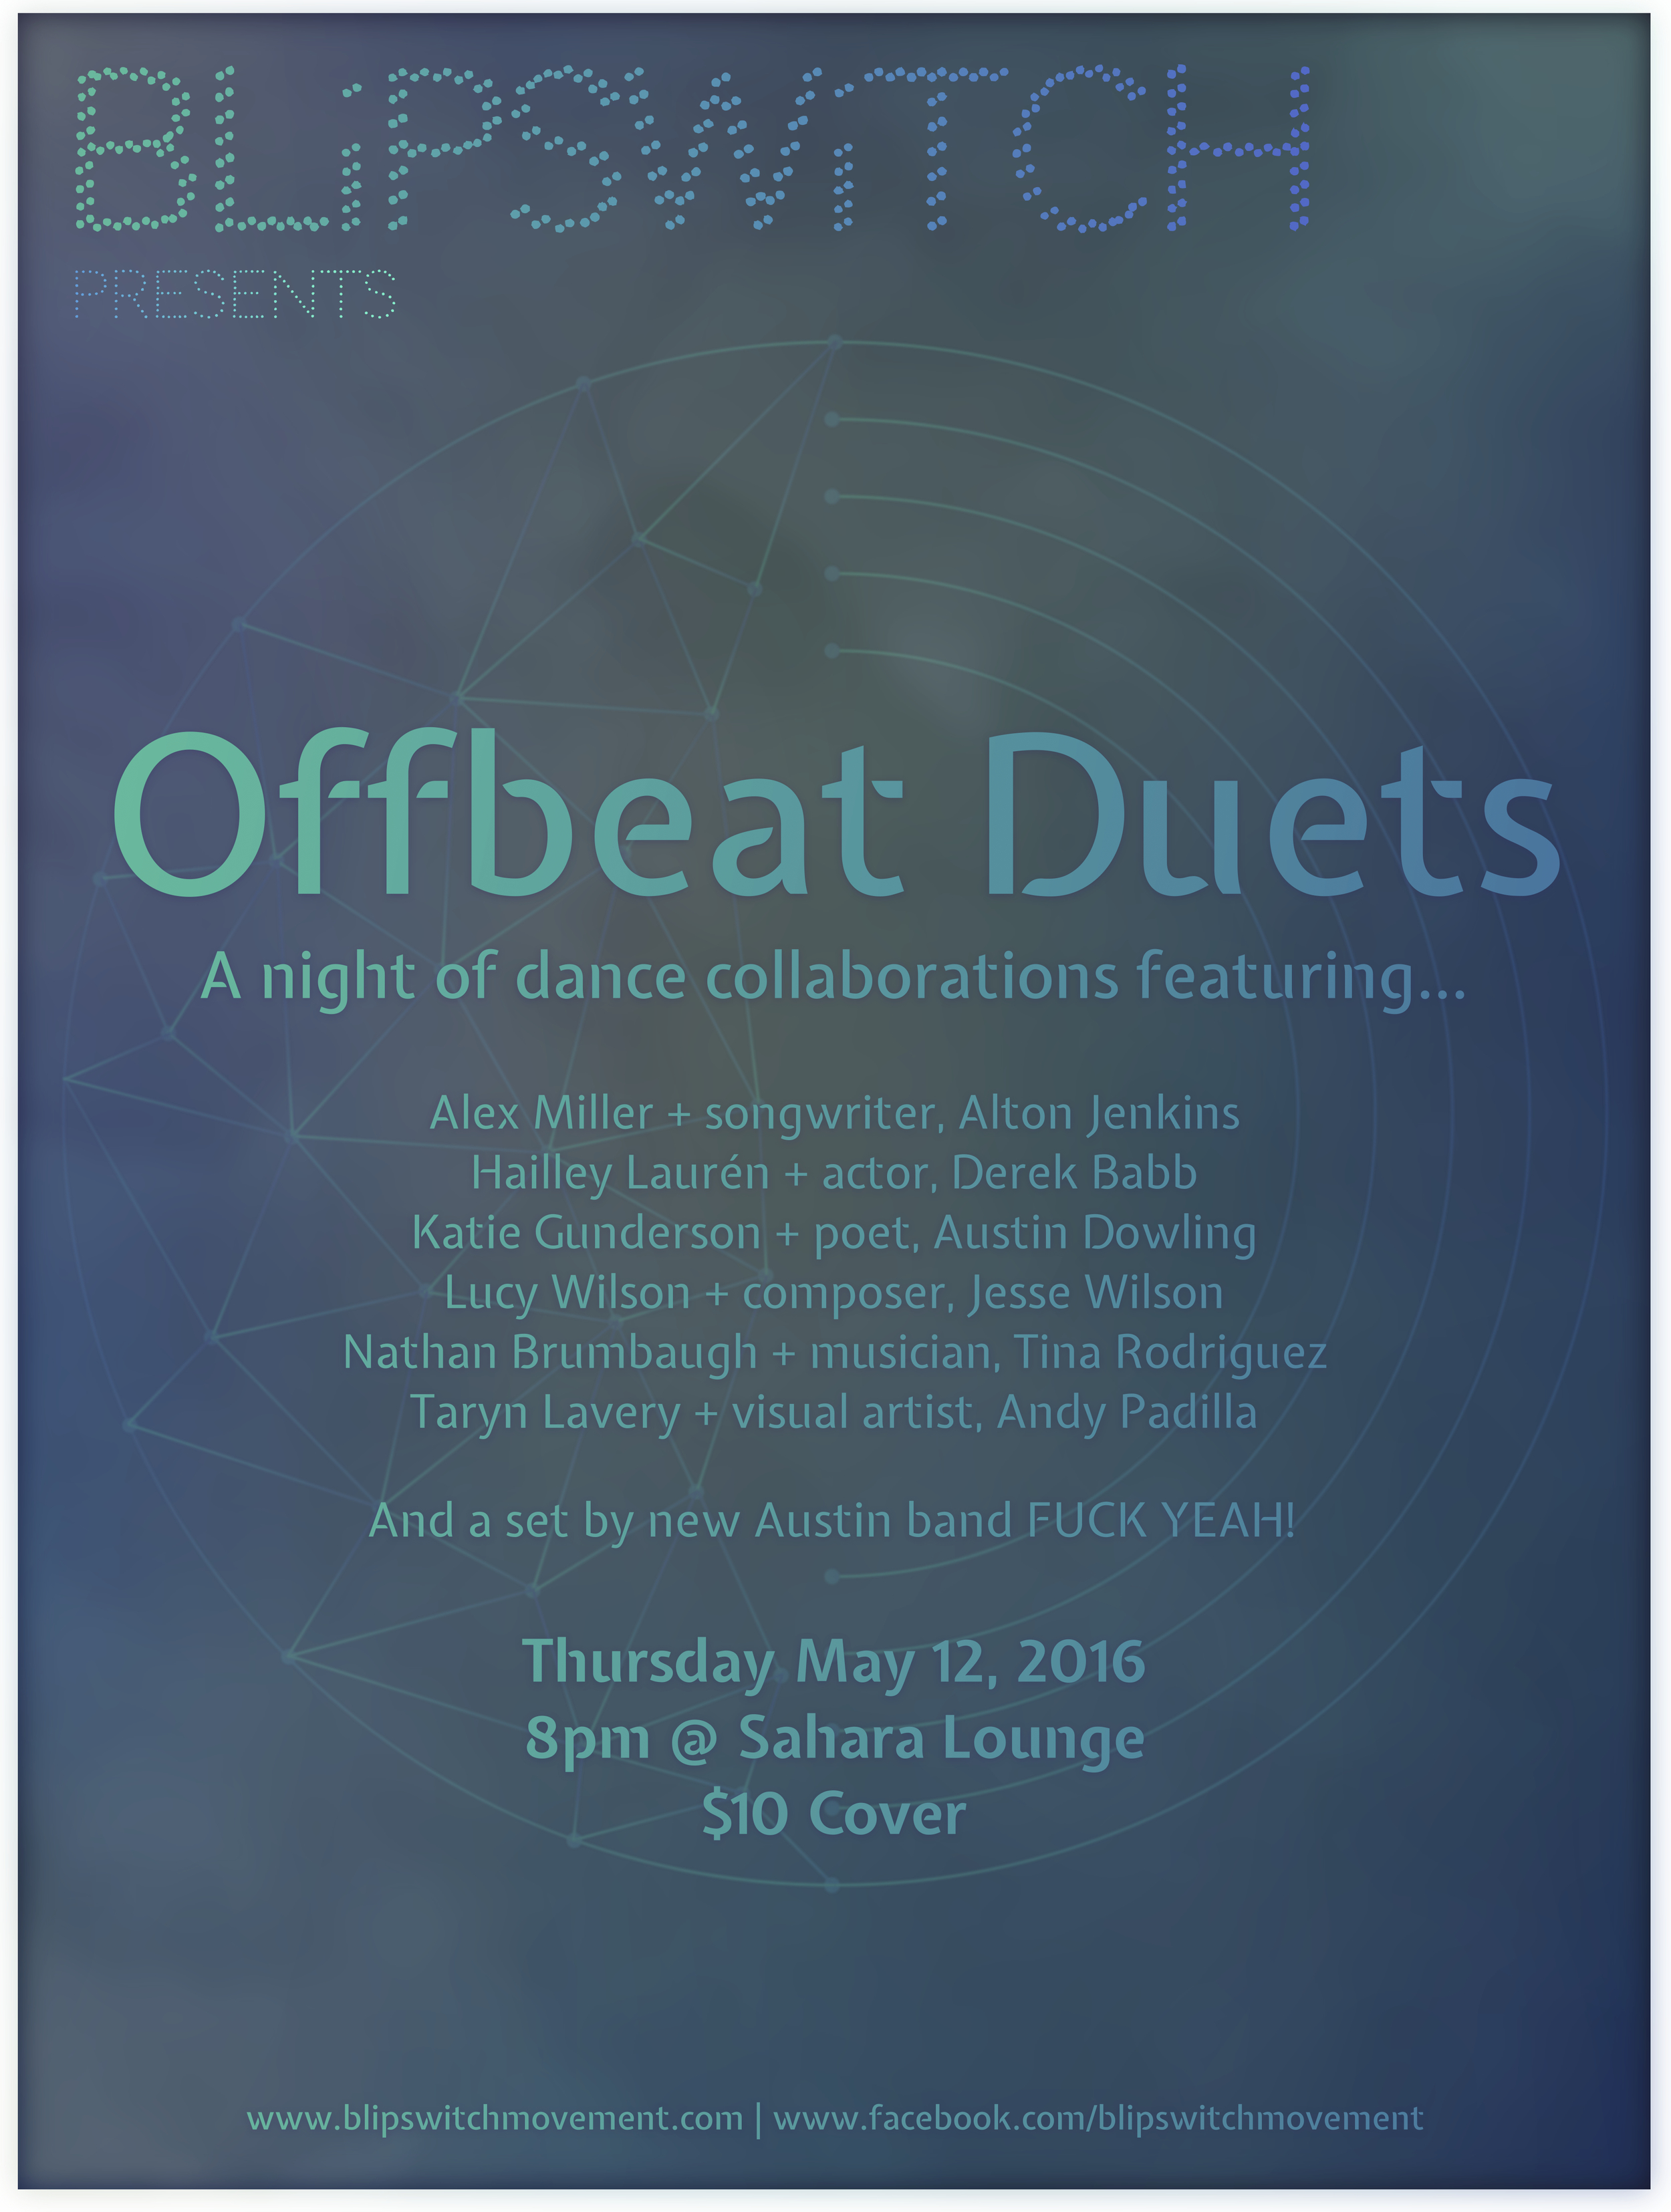 """Offbeat Duets - May 12, 2016Sahara Lounge. Austin, TXThis performance was the inaugural of what would become our """"Offbeat"""" series— hosting and presenting a new set of artists within the local community each time. We asked selected dancers/choreographers to work with at least one artist outside the realm of dance to create, within a month, an original work for a one-night-only performance held in an unconventional space."""